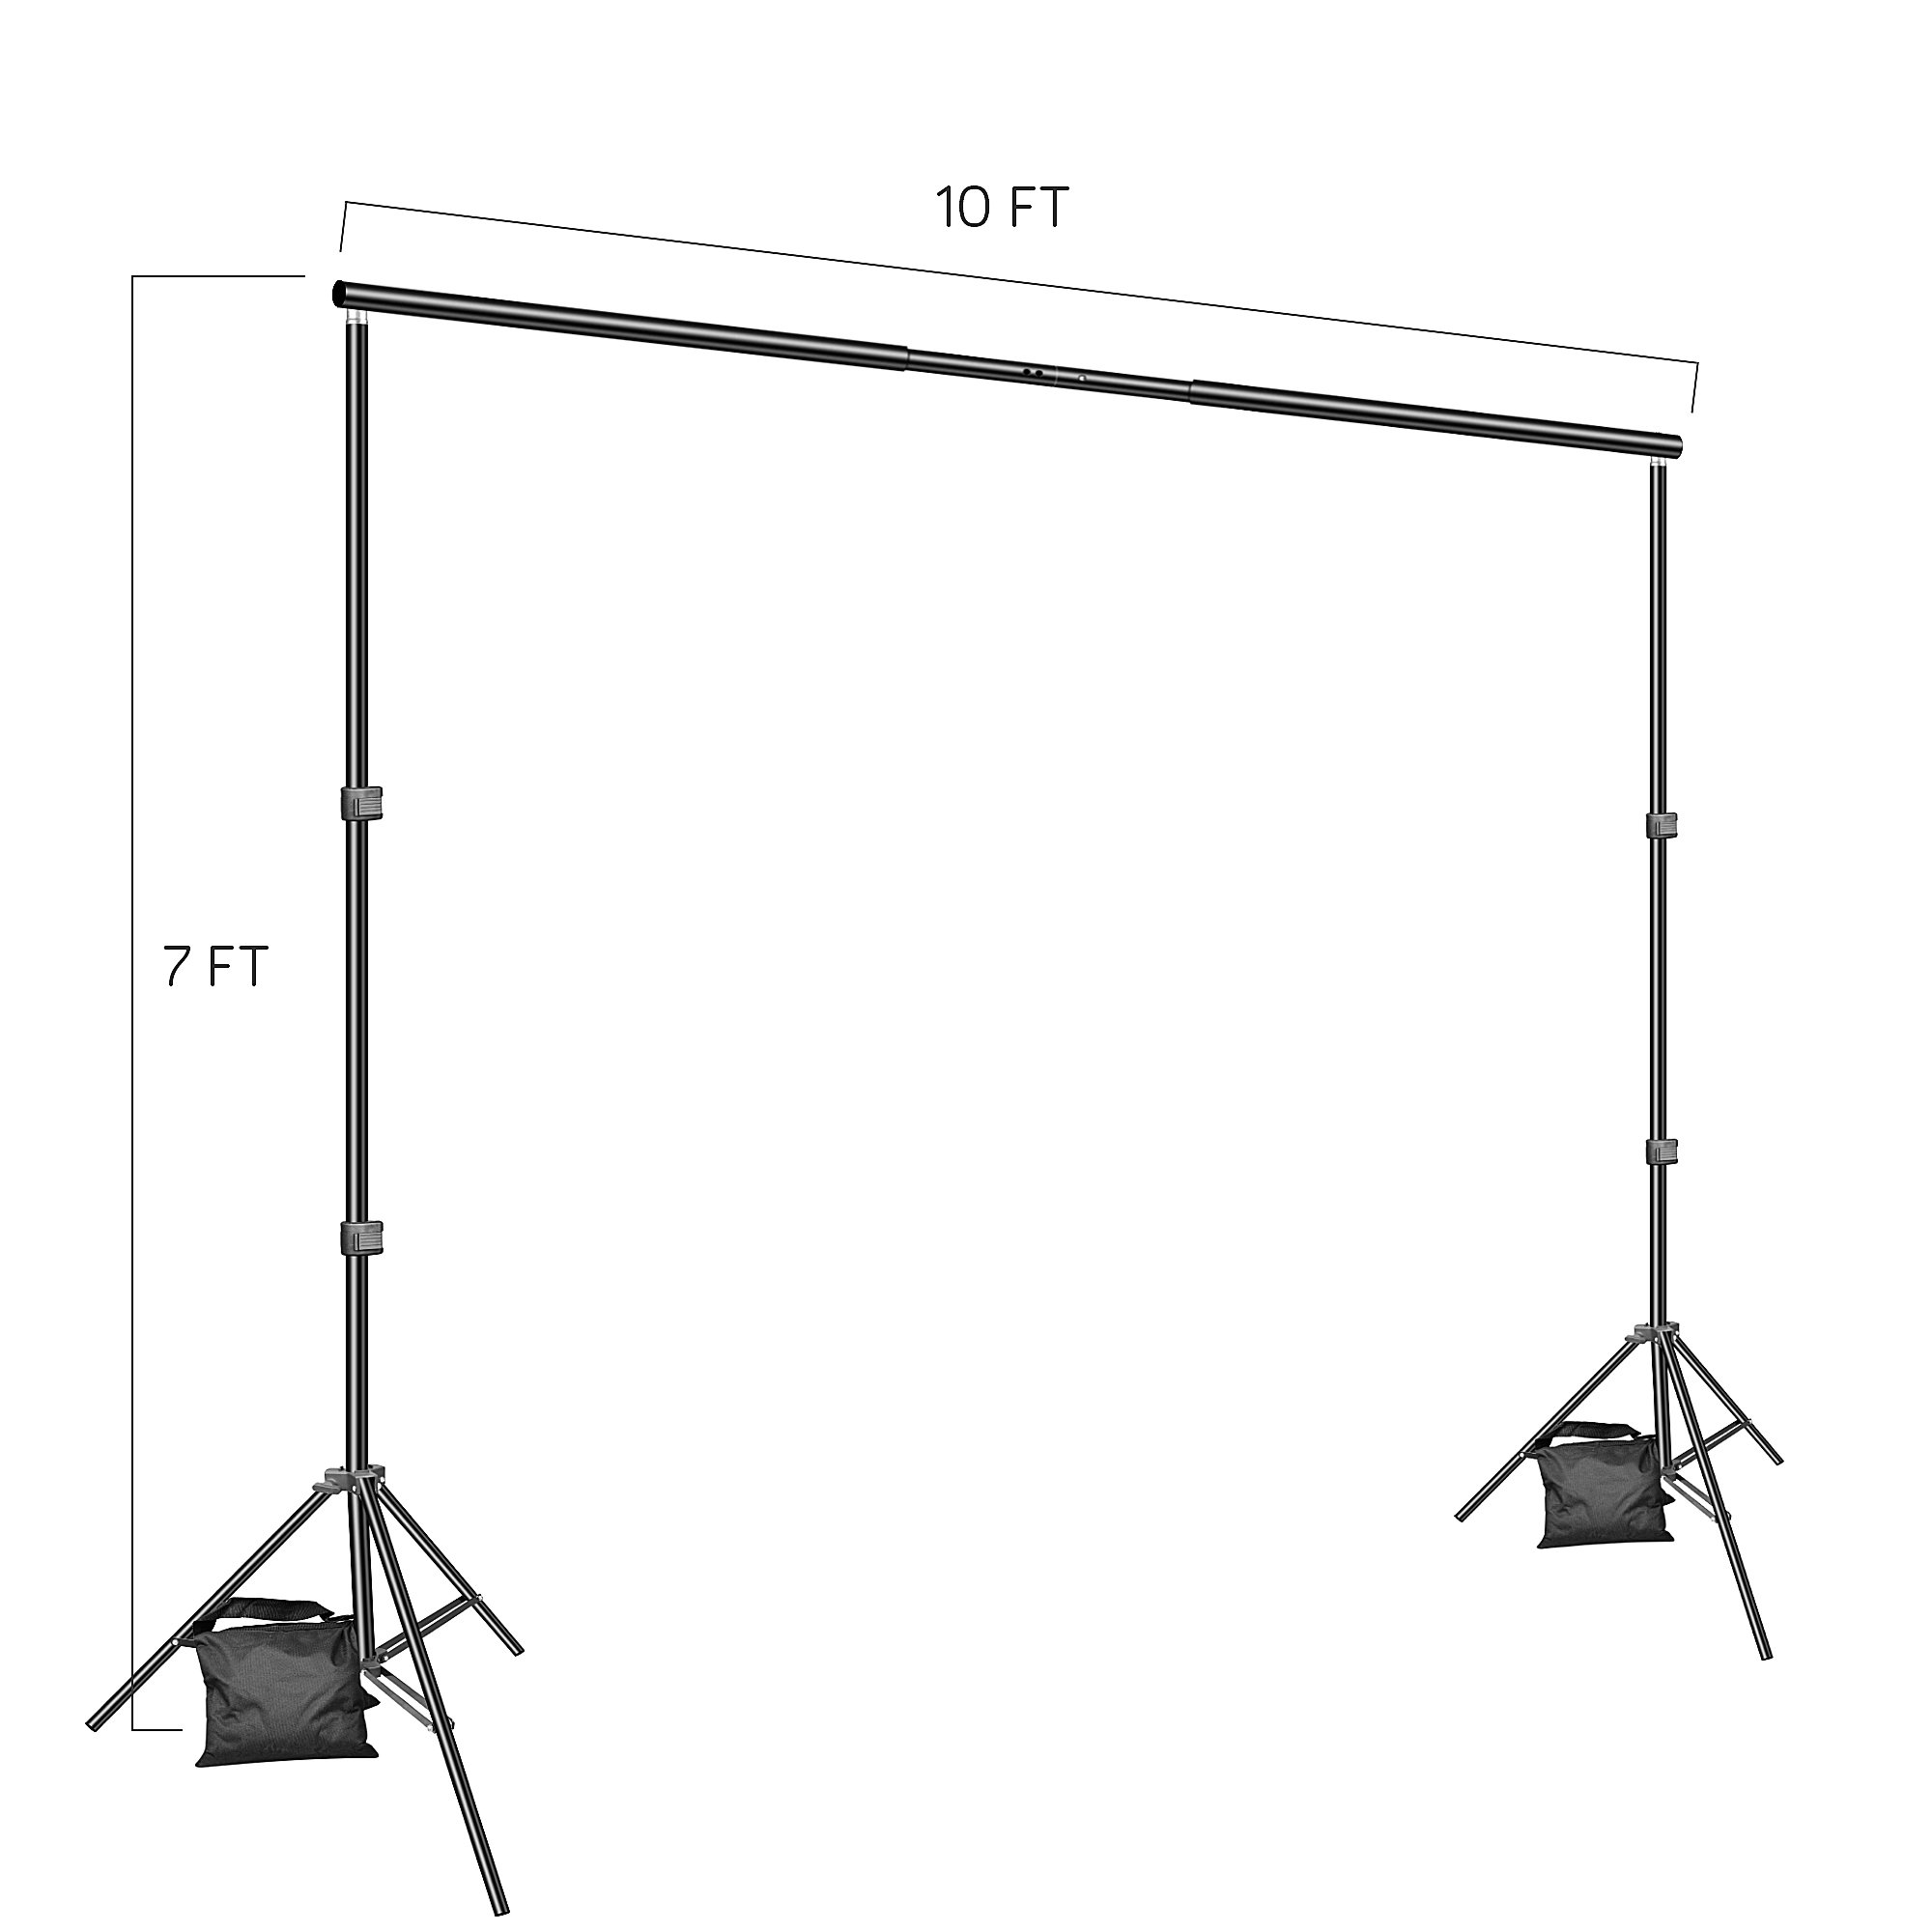 Backdrop Stand, Emart 7x10ft Photo Video Studio Muslin Background Stand Backdrop Support System Kit with Mini Ball Head, Photography Studio by EMART (Image #3)